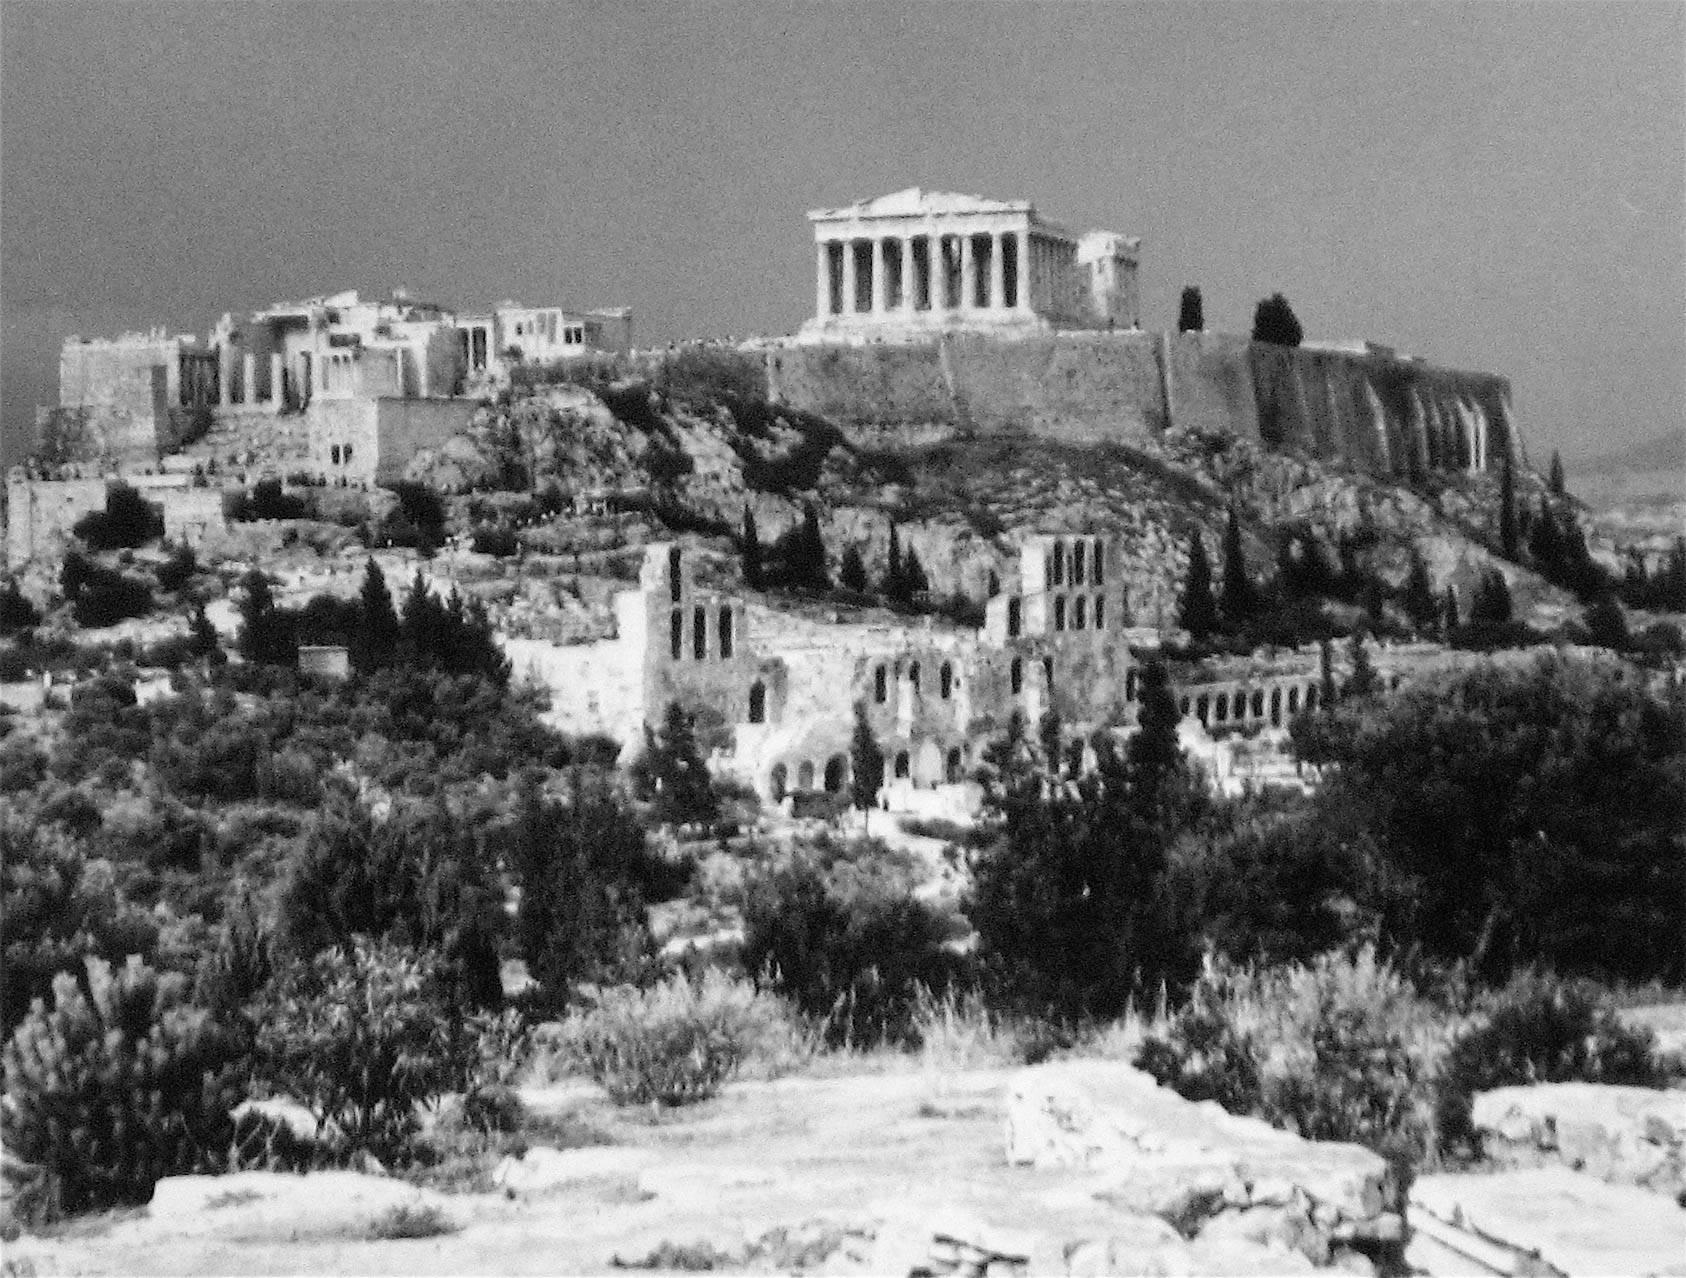 Roz joseph greek hillside with ruins black and white photograph